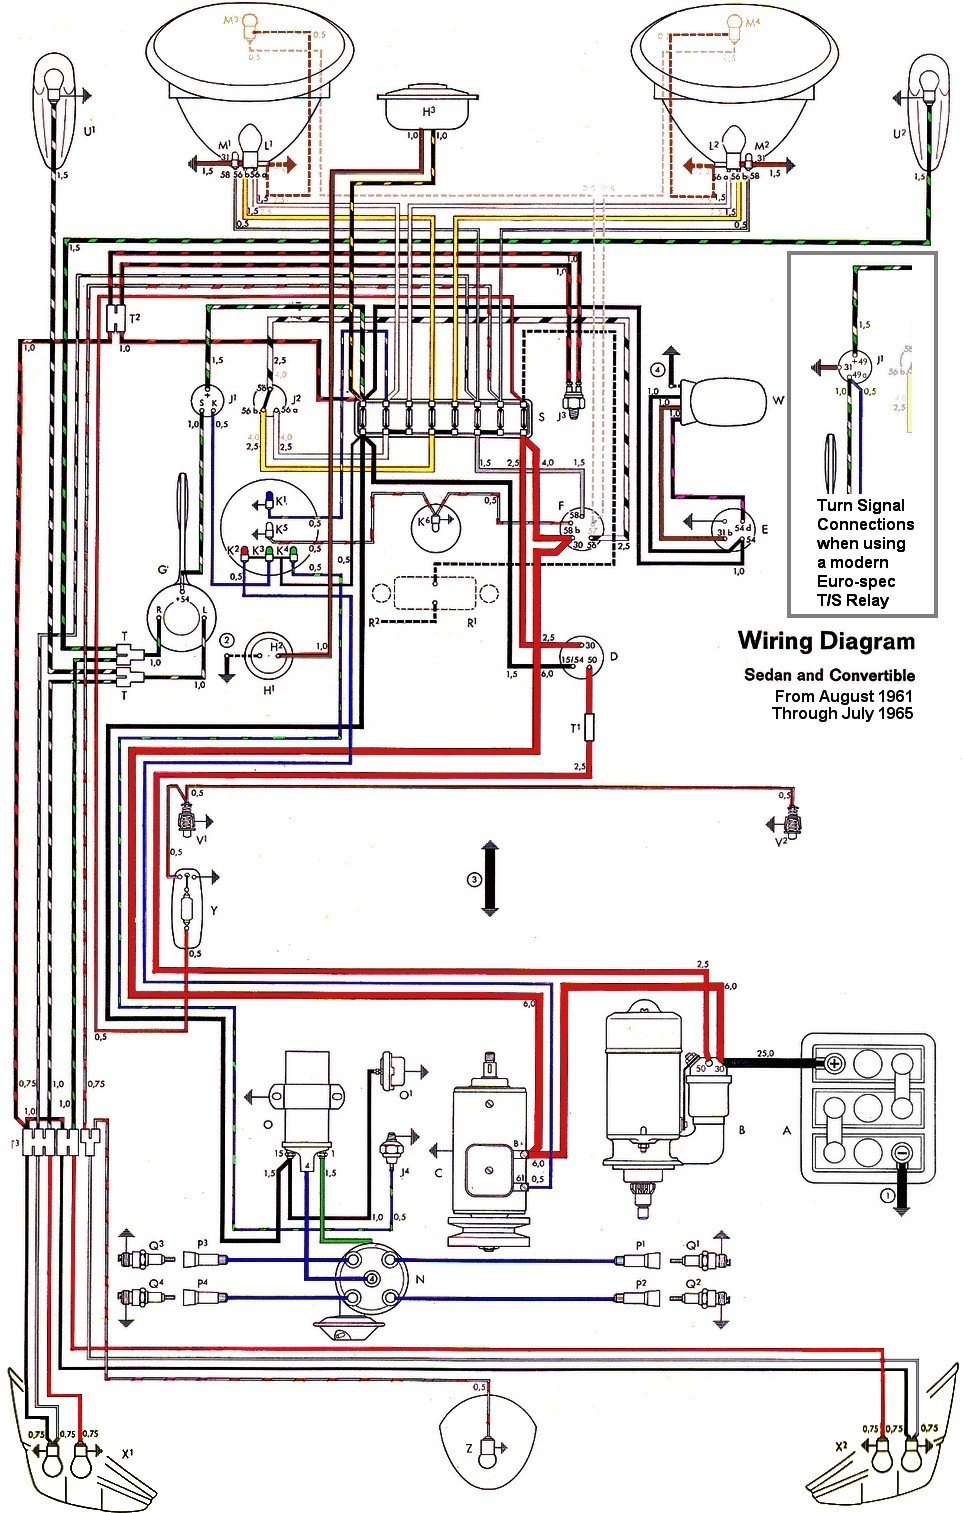 bug_62 65withinset thesamba com type 1 wiring diagrams 1973 vw wiring diagram at nearapp.co